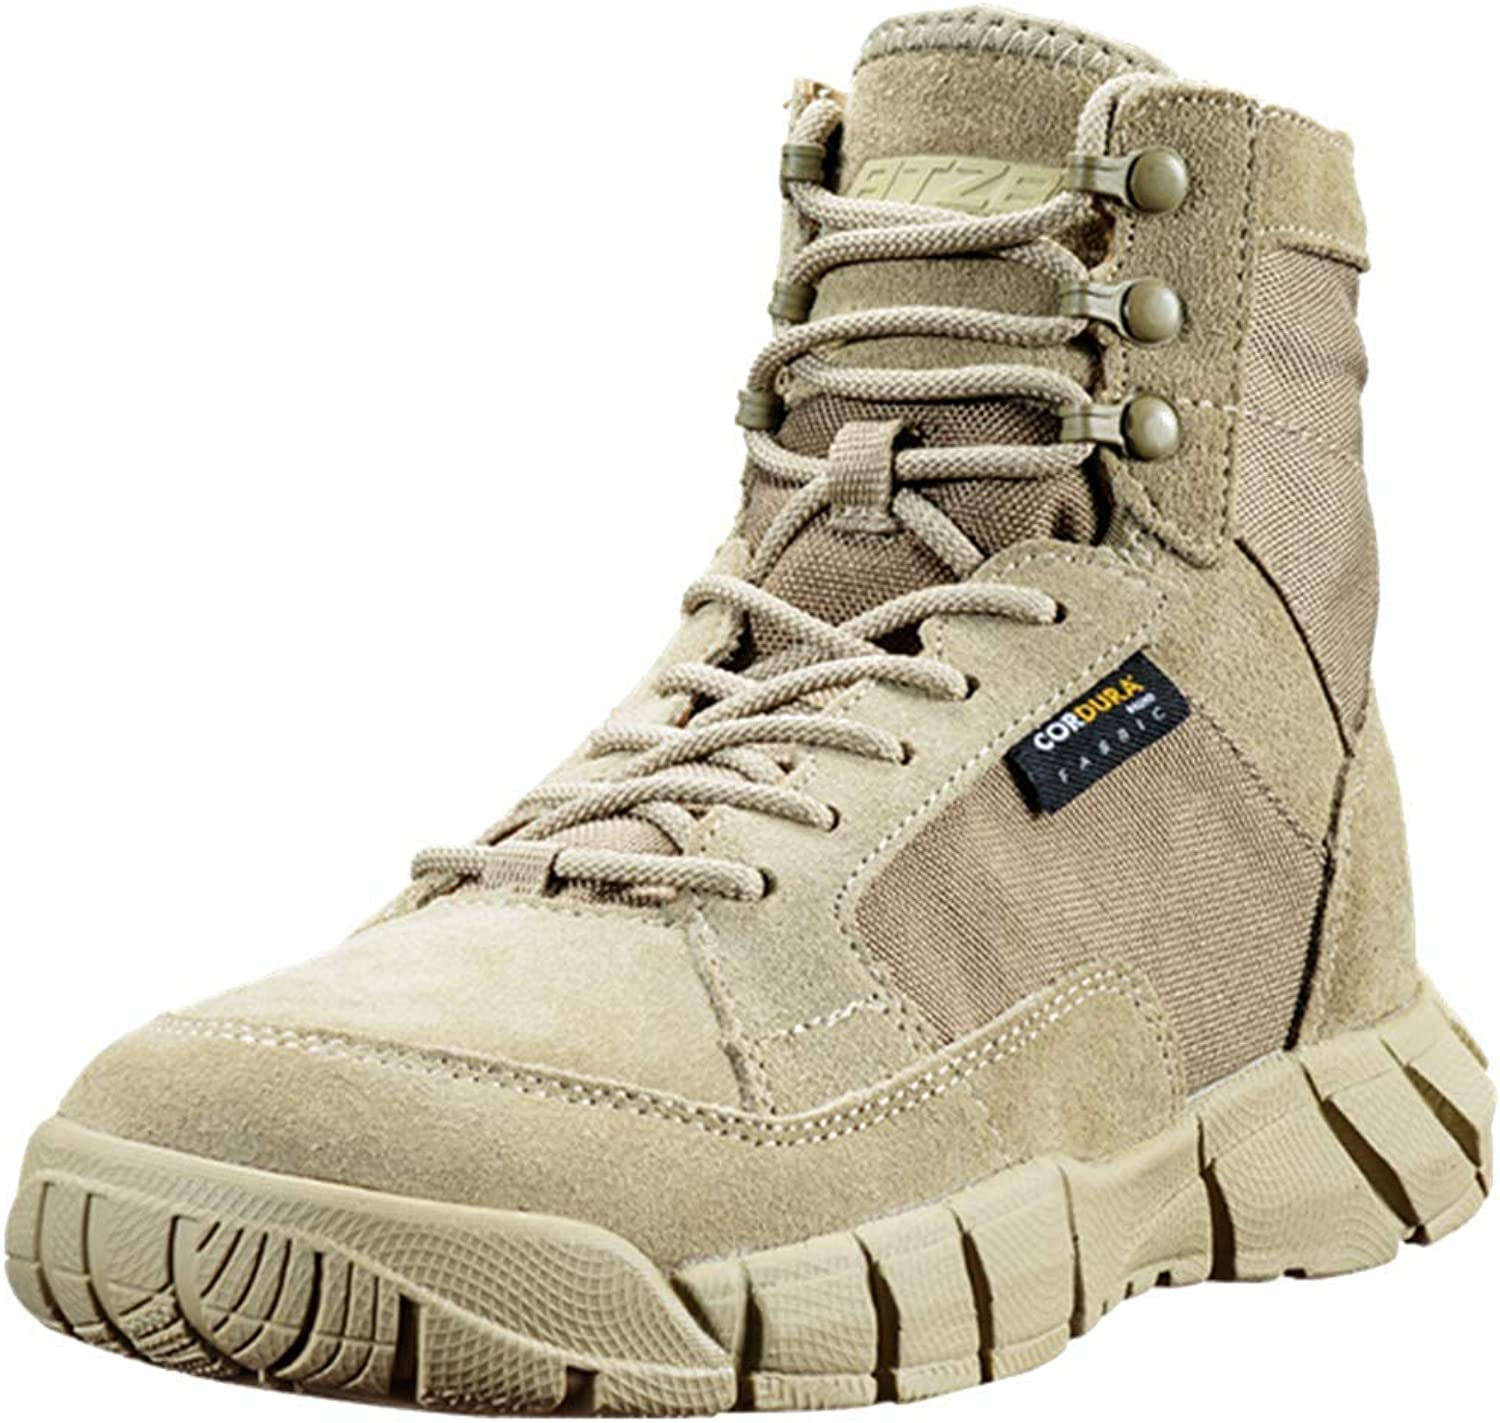 New Special Forces Ultra Light Military Boots Outdoor Tactical Boots Desert Jungle Hunting Hiking shoes Waterproof wear-Resistant Puncture